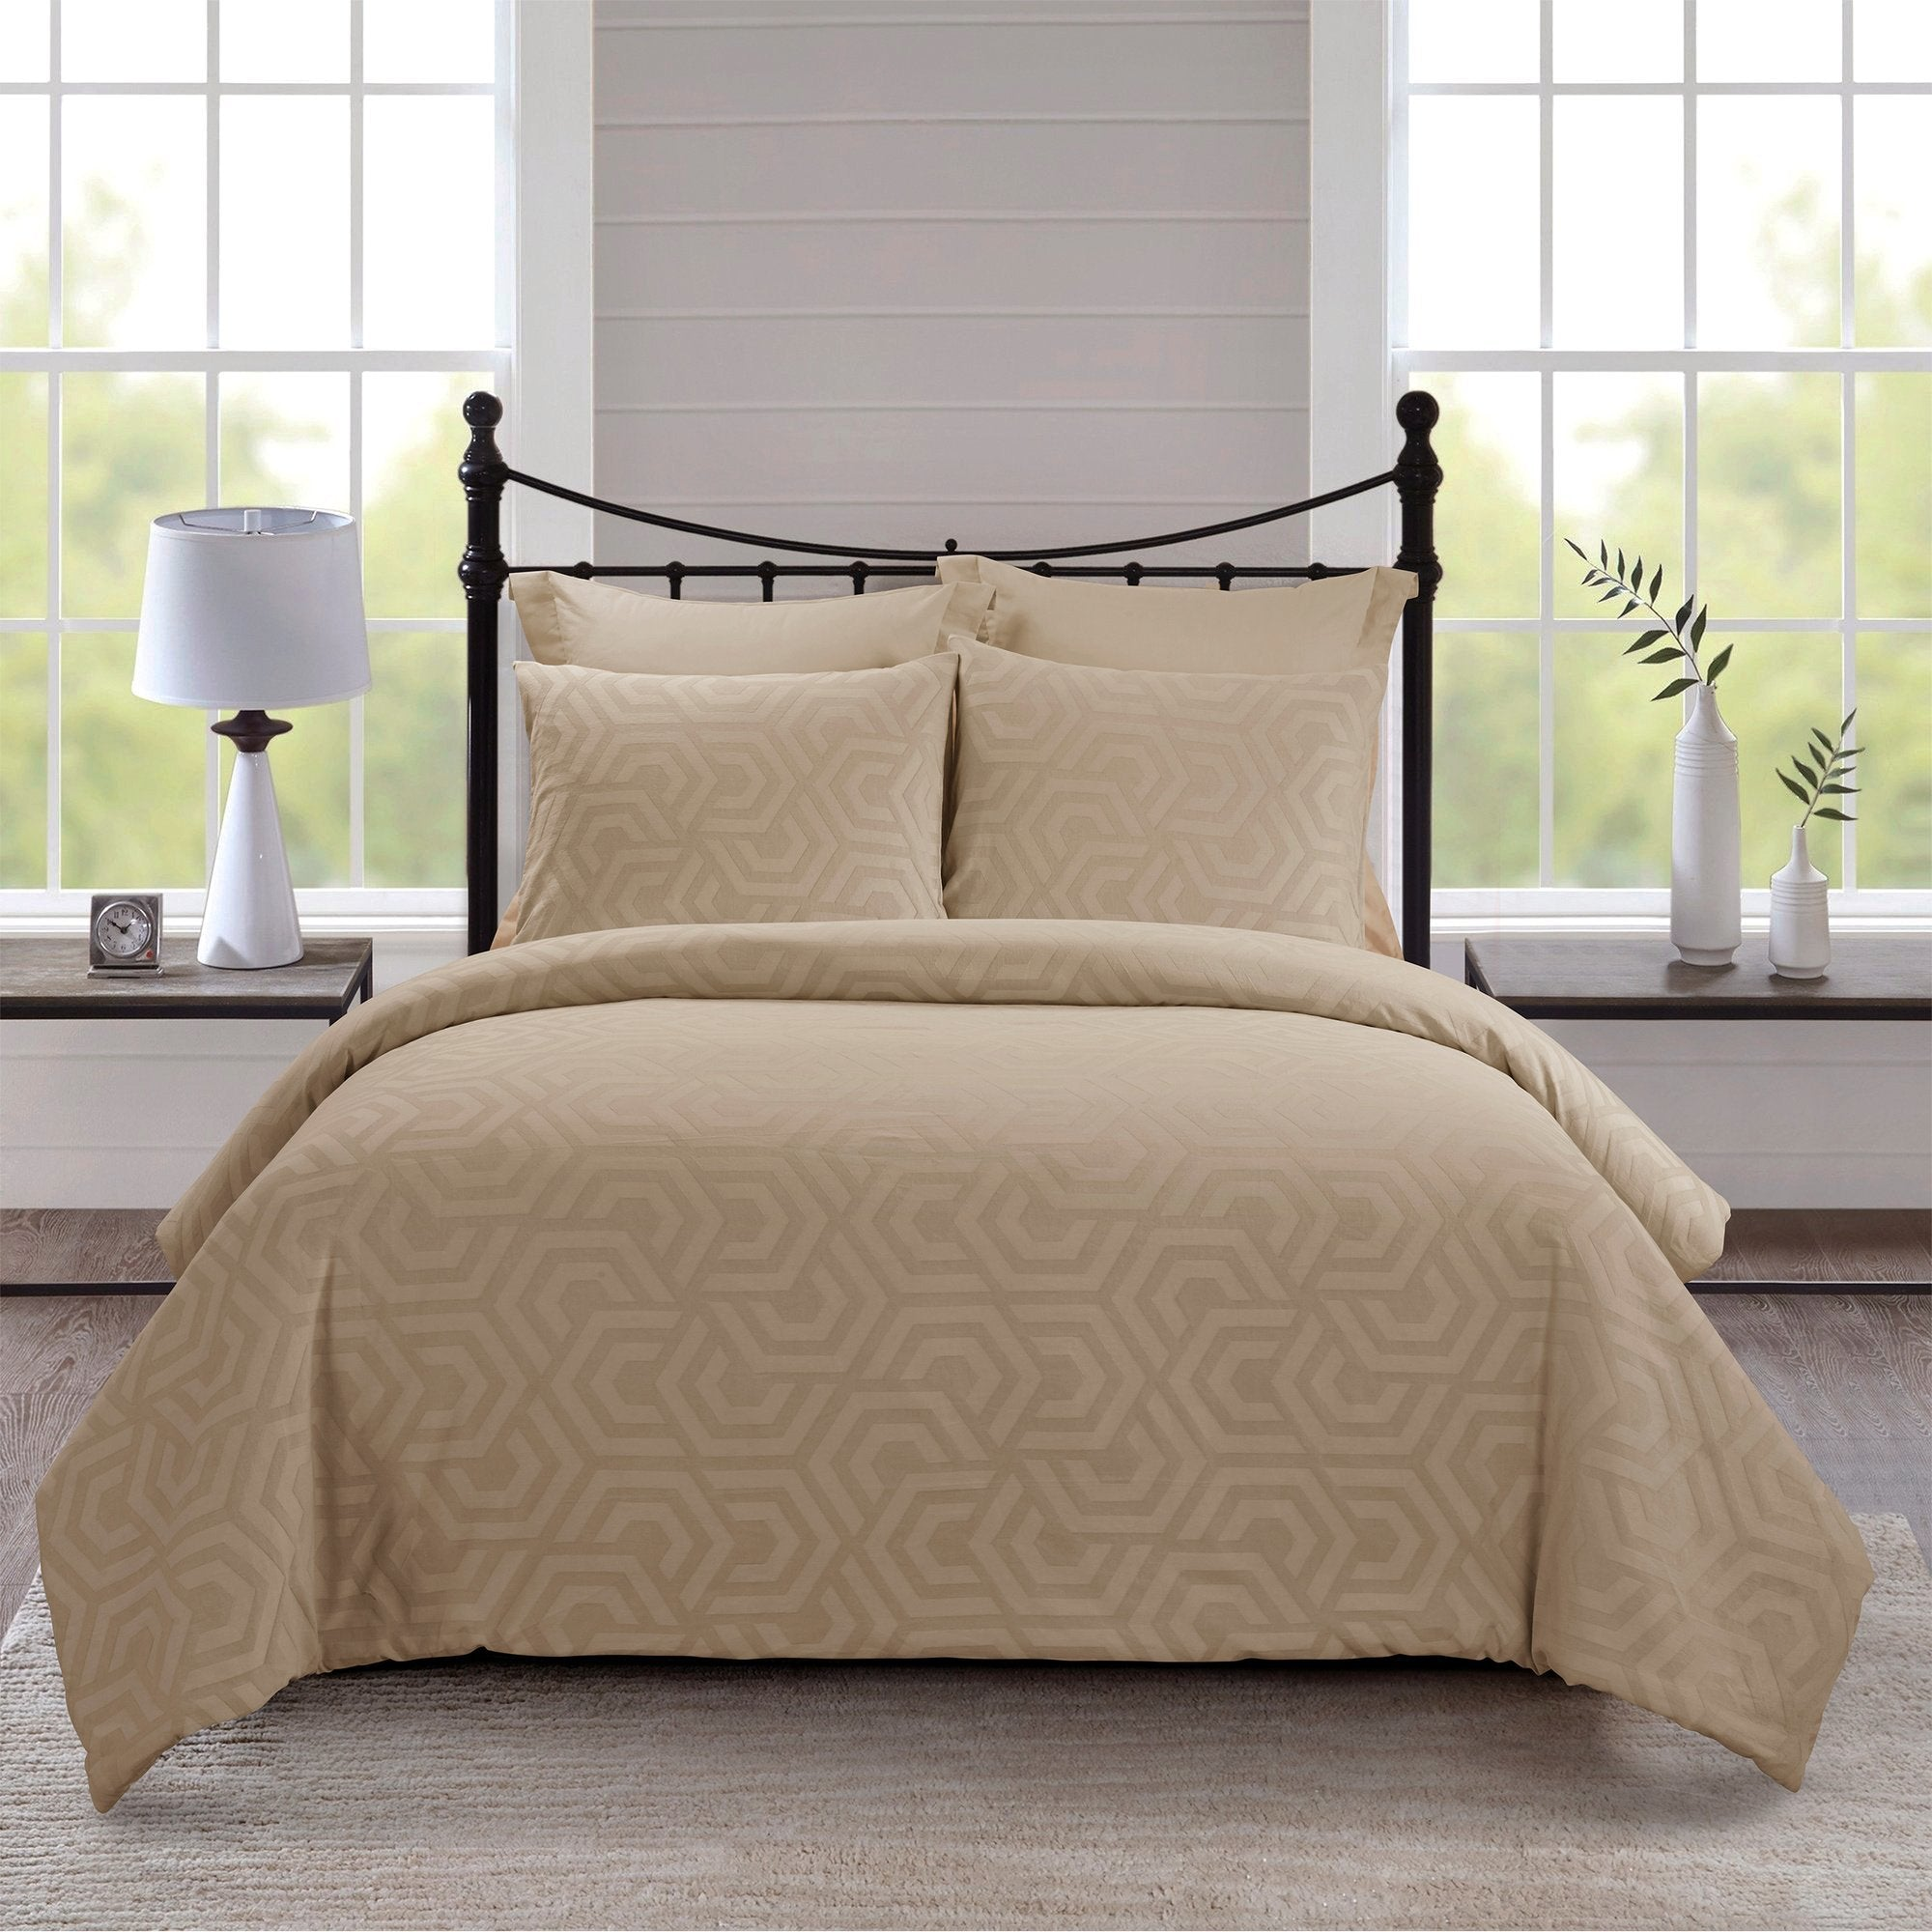 Seville Sand 3 Piece Comforter Set [Luxury comforter Sets] [by Latest Bedding]